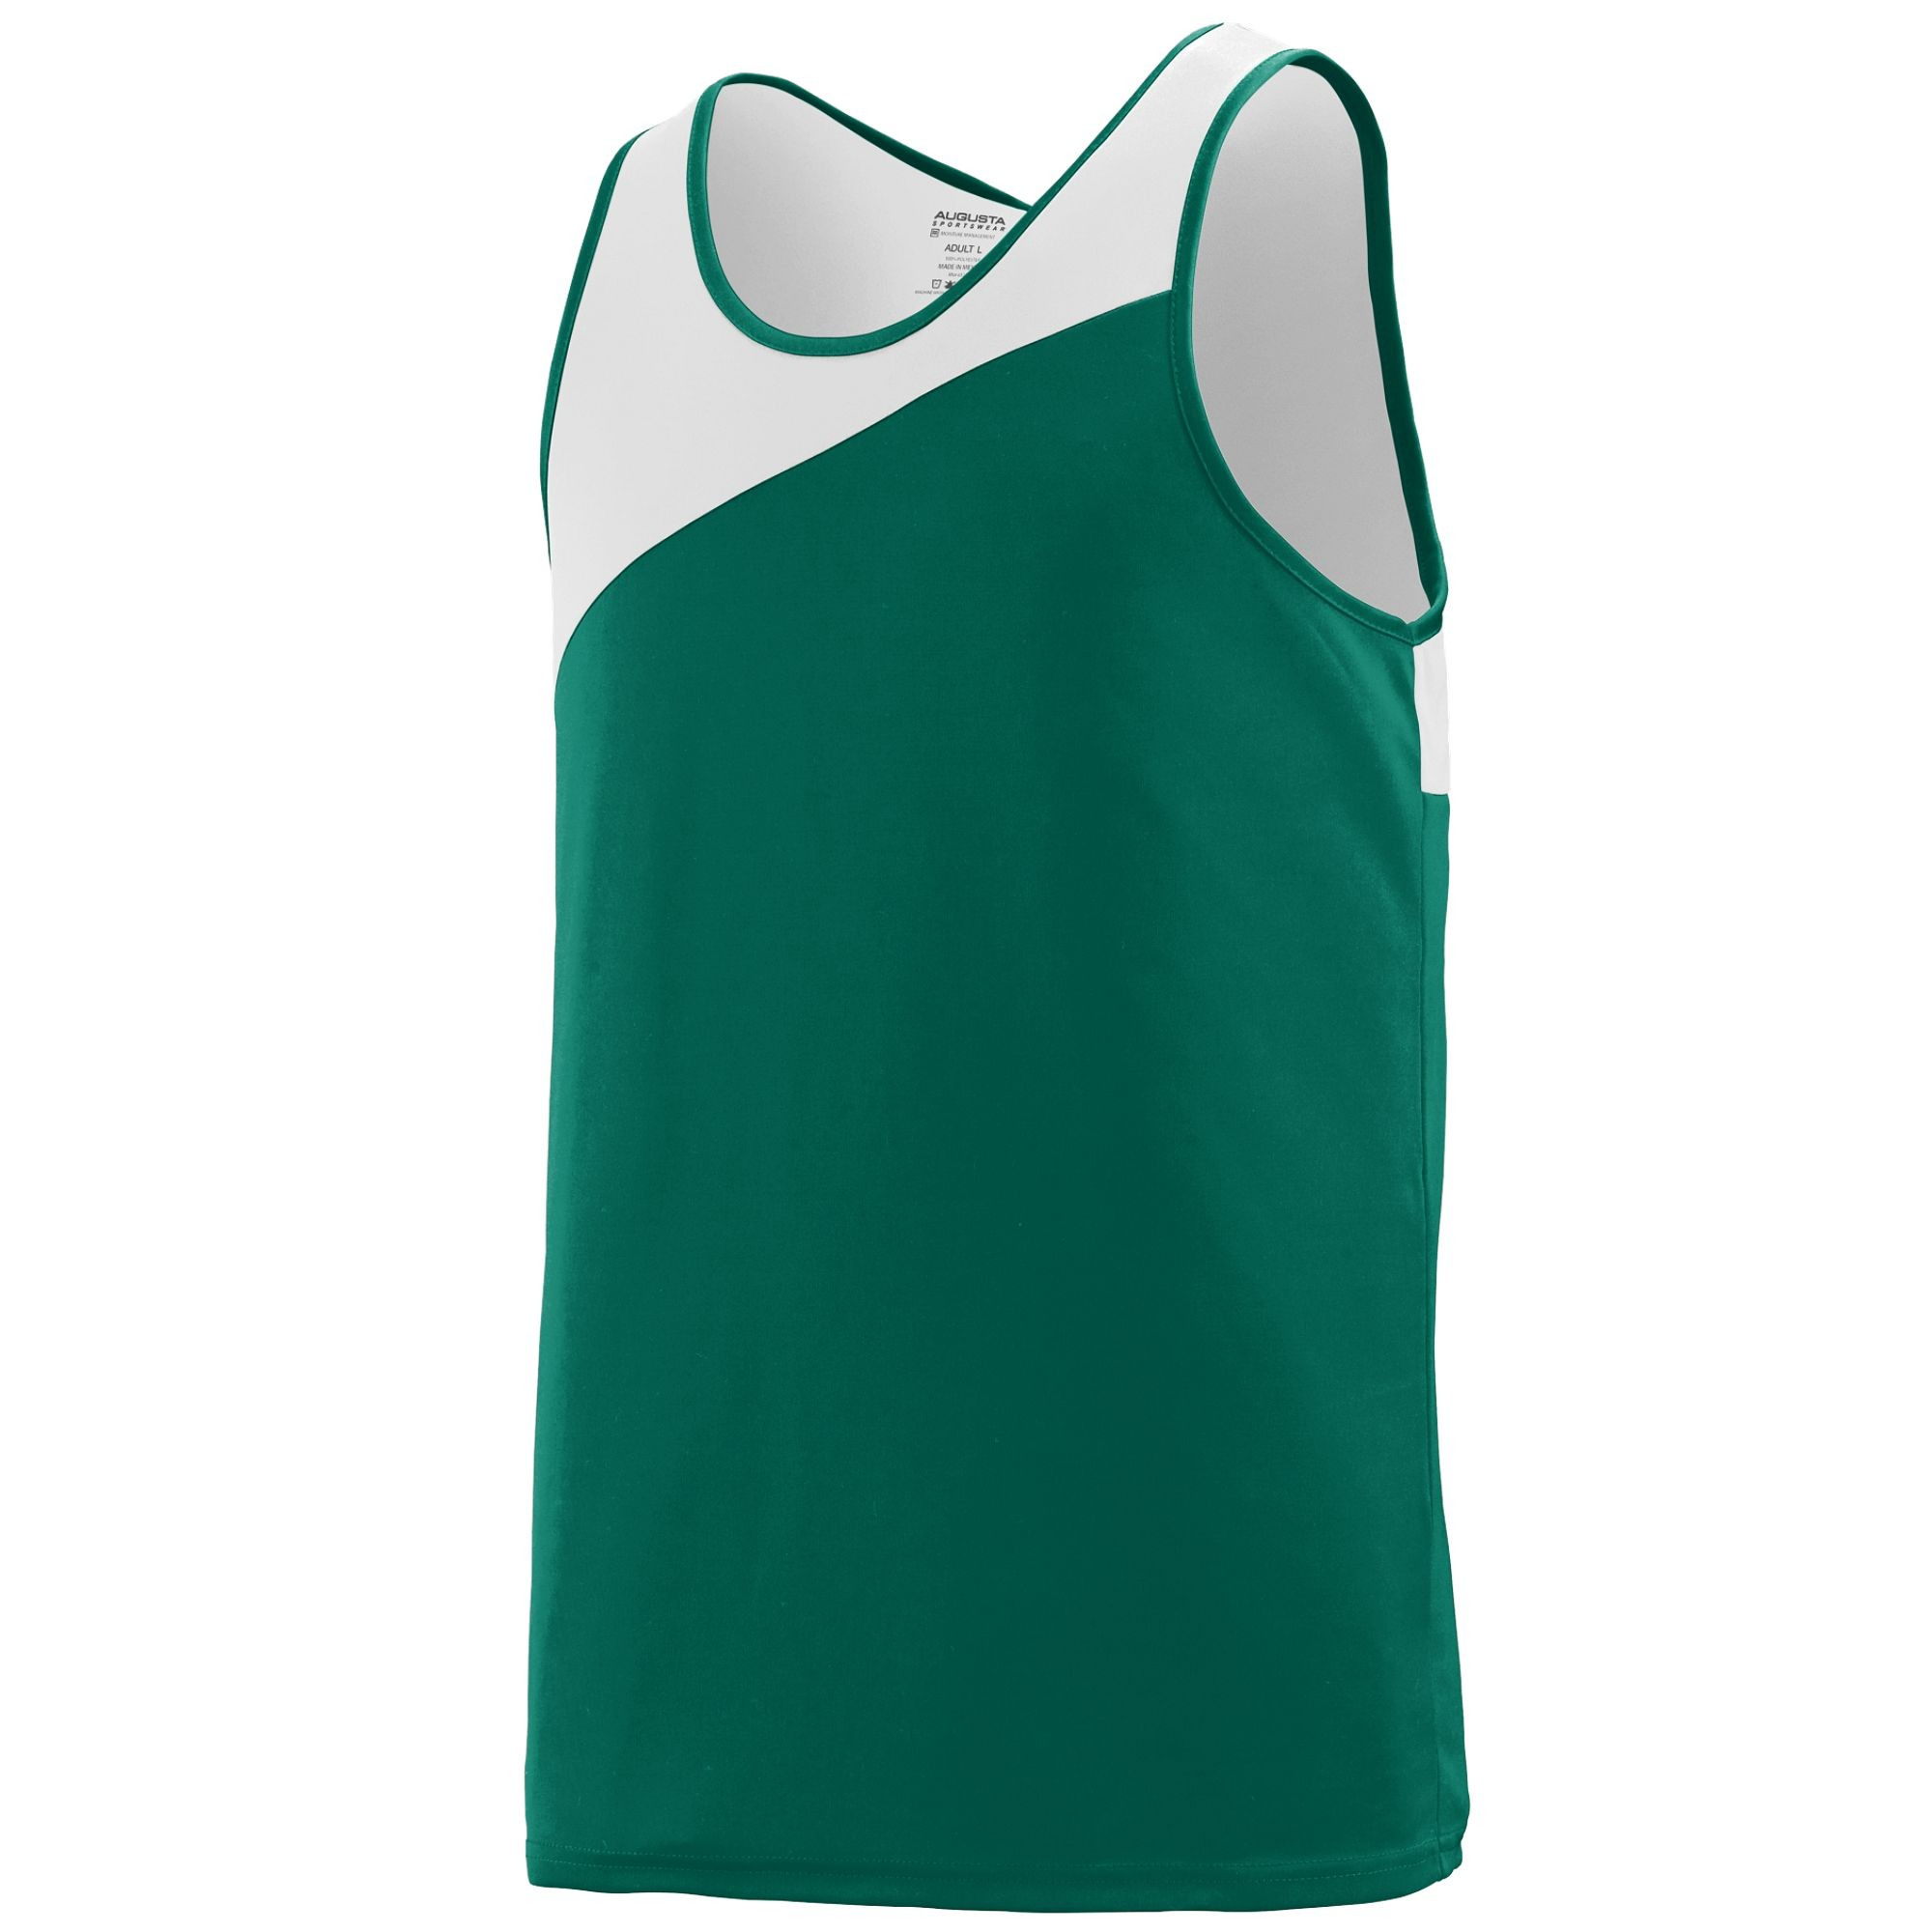 Augusta Accelerate Jersey - Mens/Youth